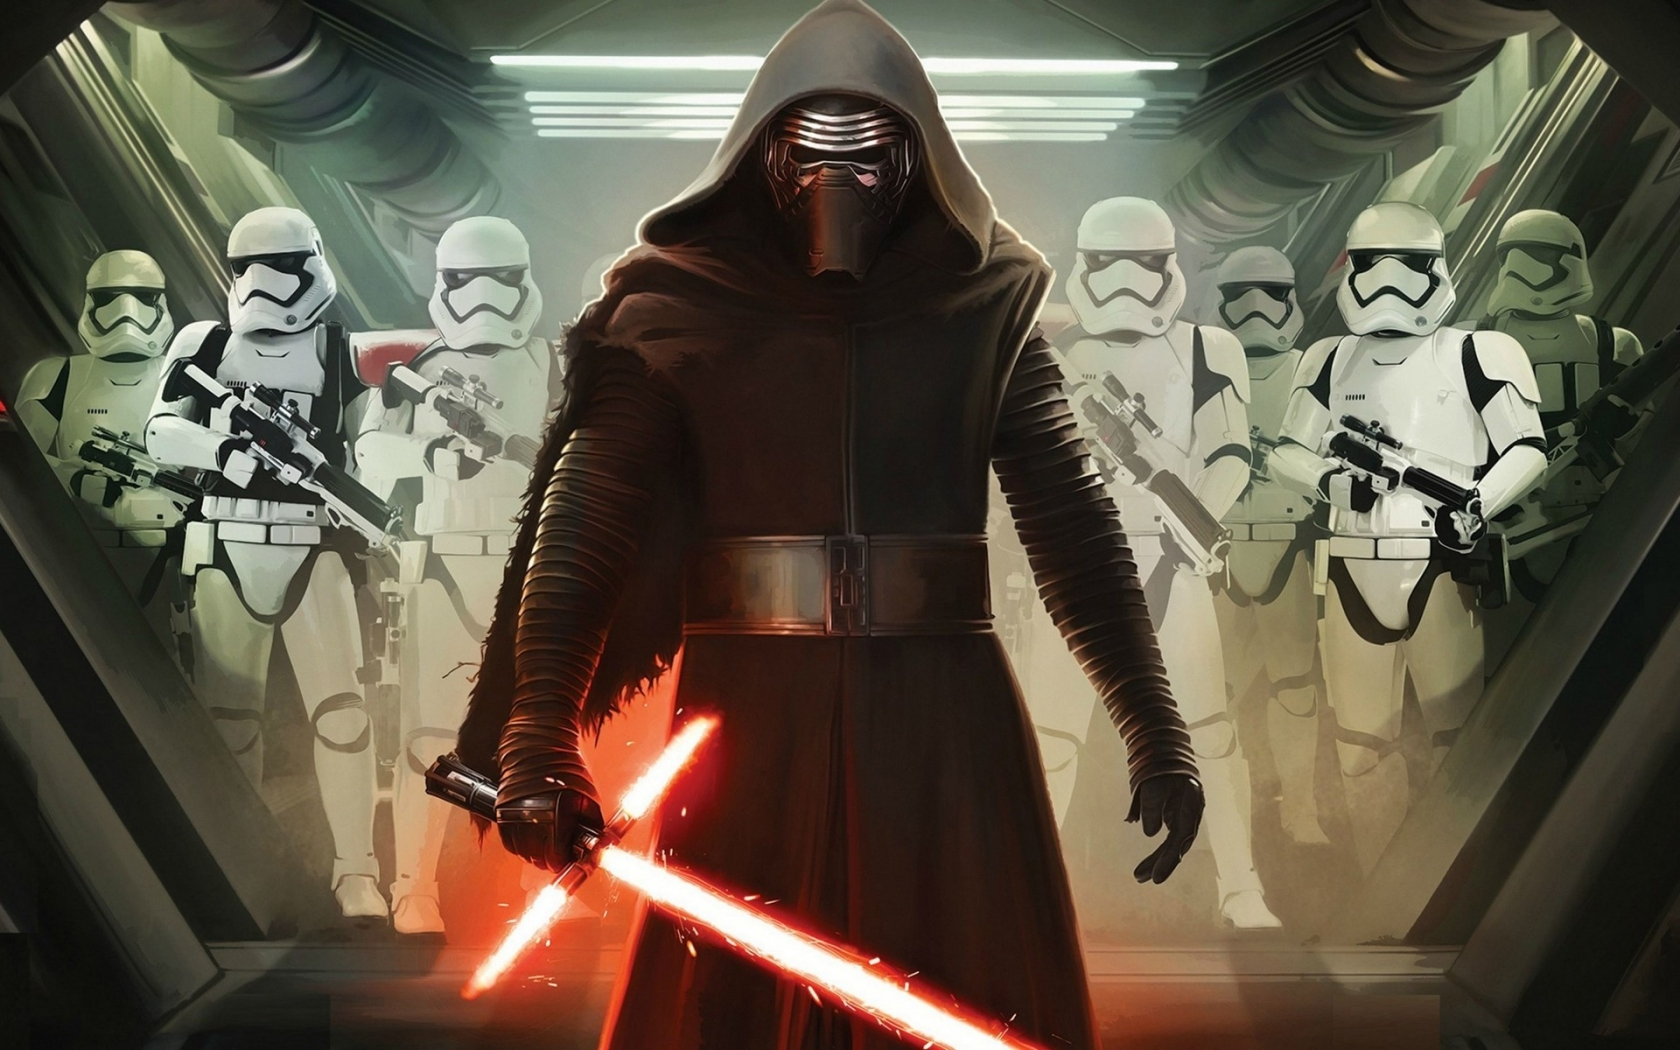 Star Wars VII Darth Vader and Storm Troopers for 1680 x 1050 widescreen resolution